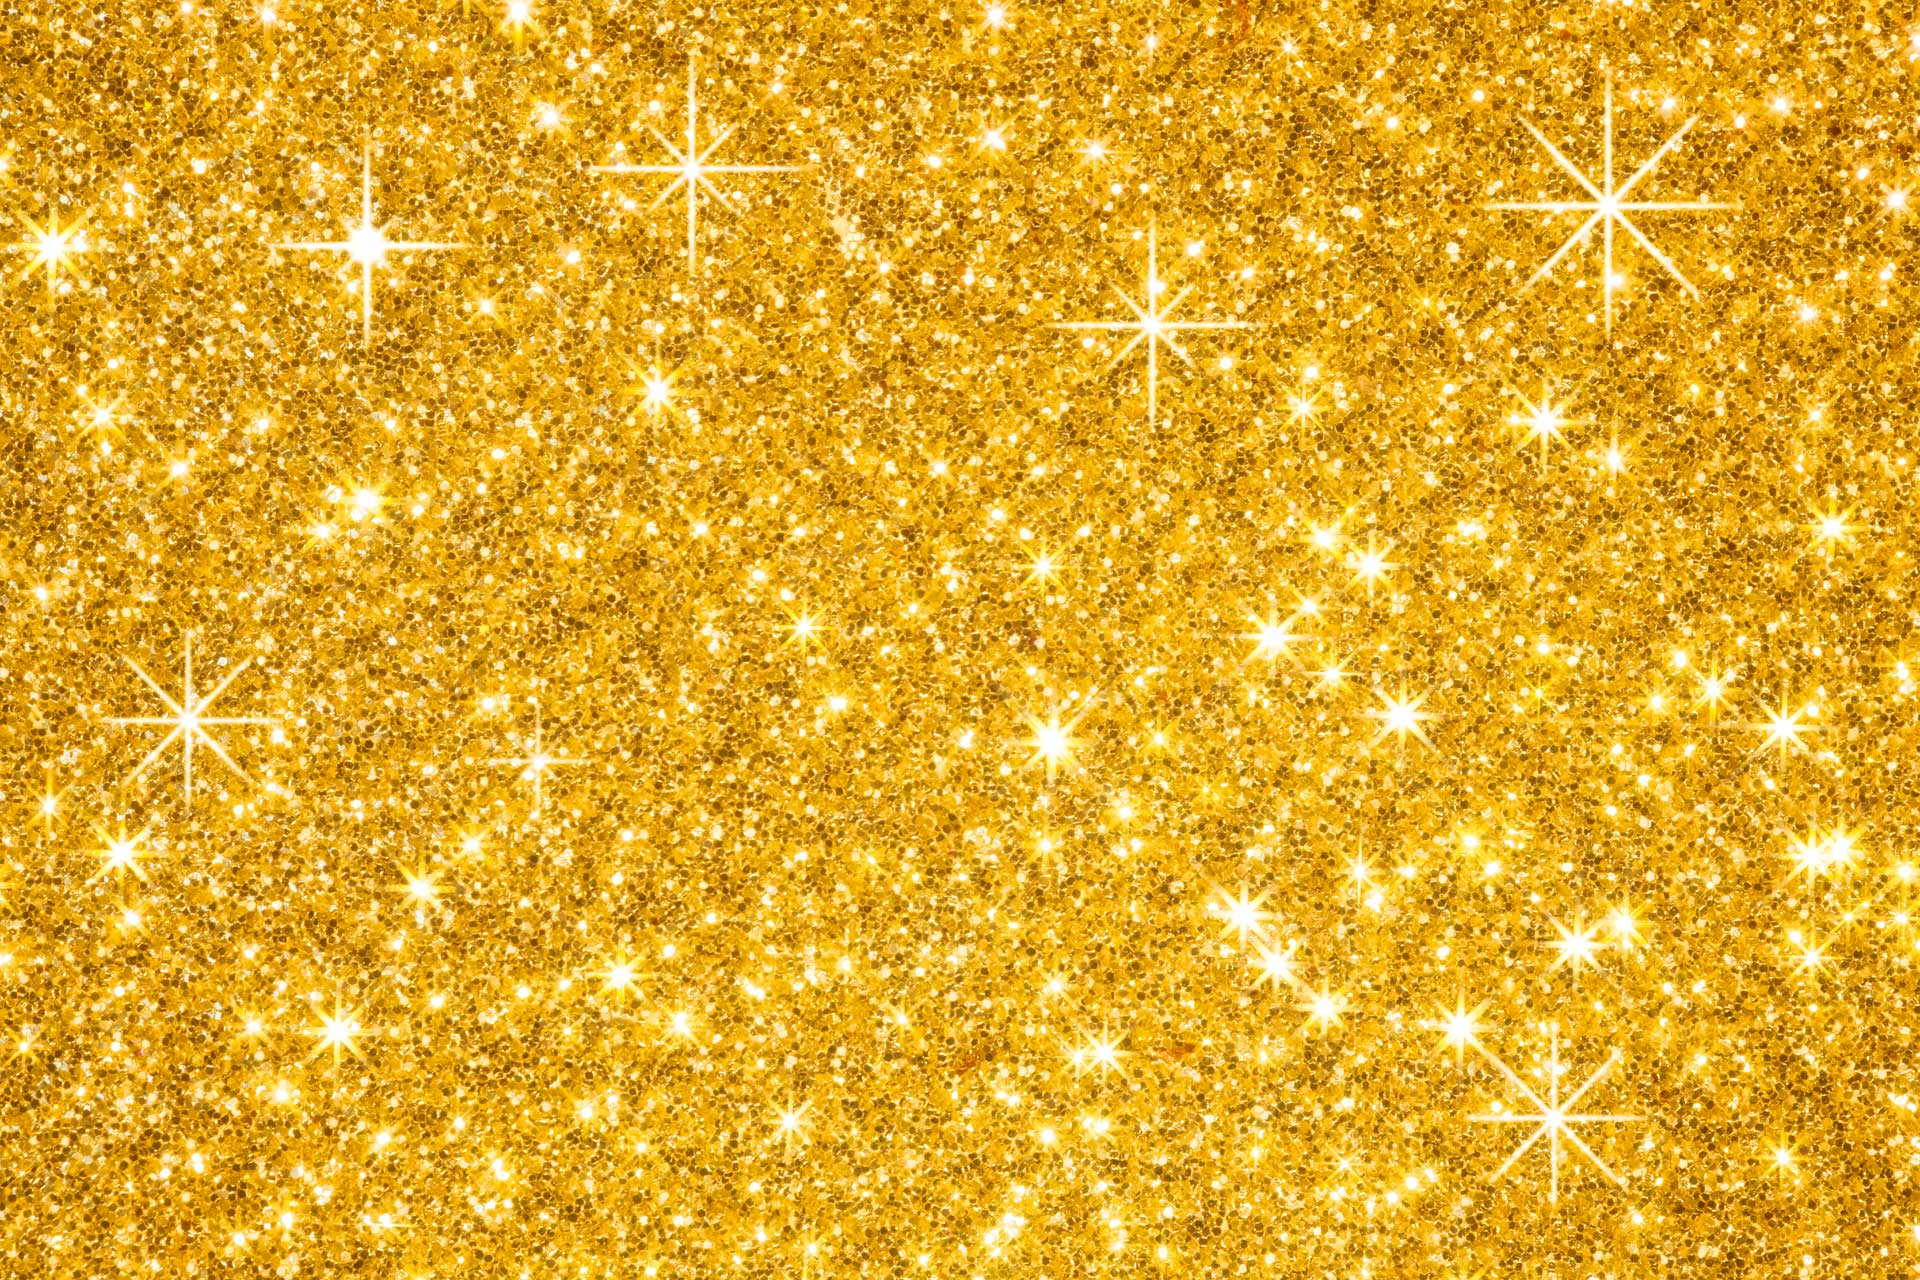 Gold and black glitter backgrounds